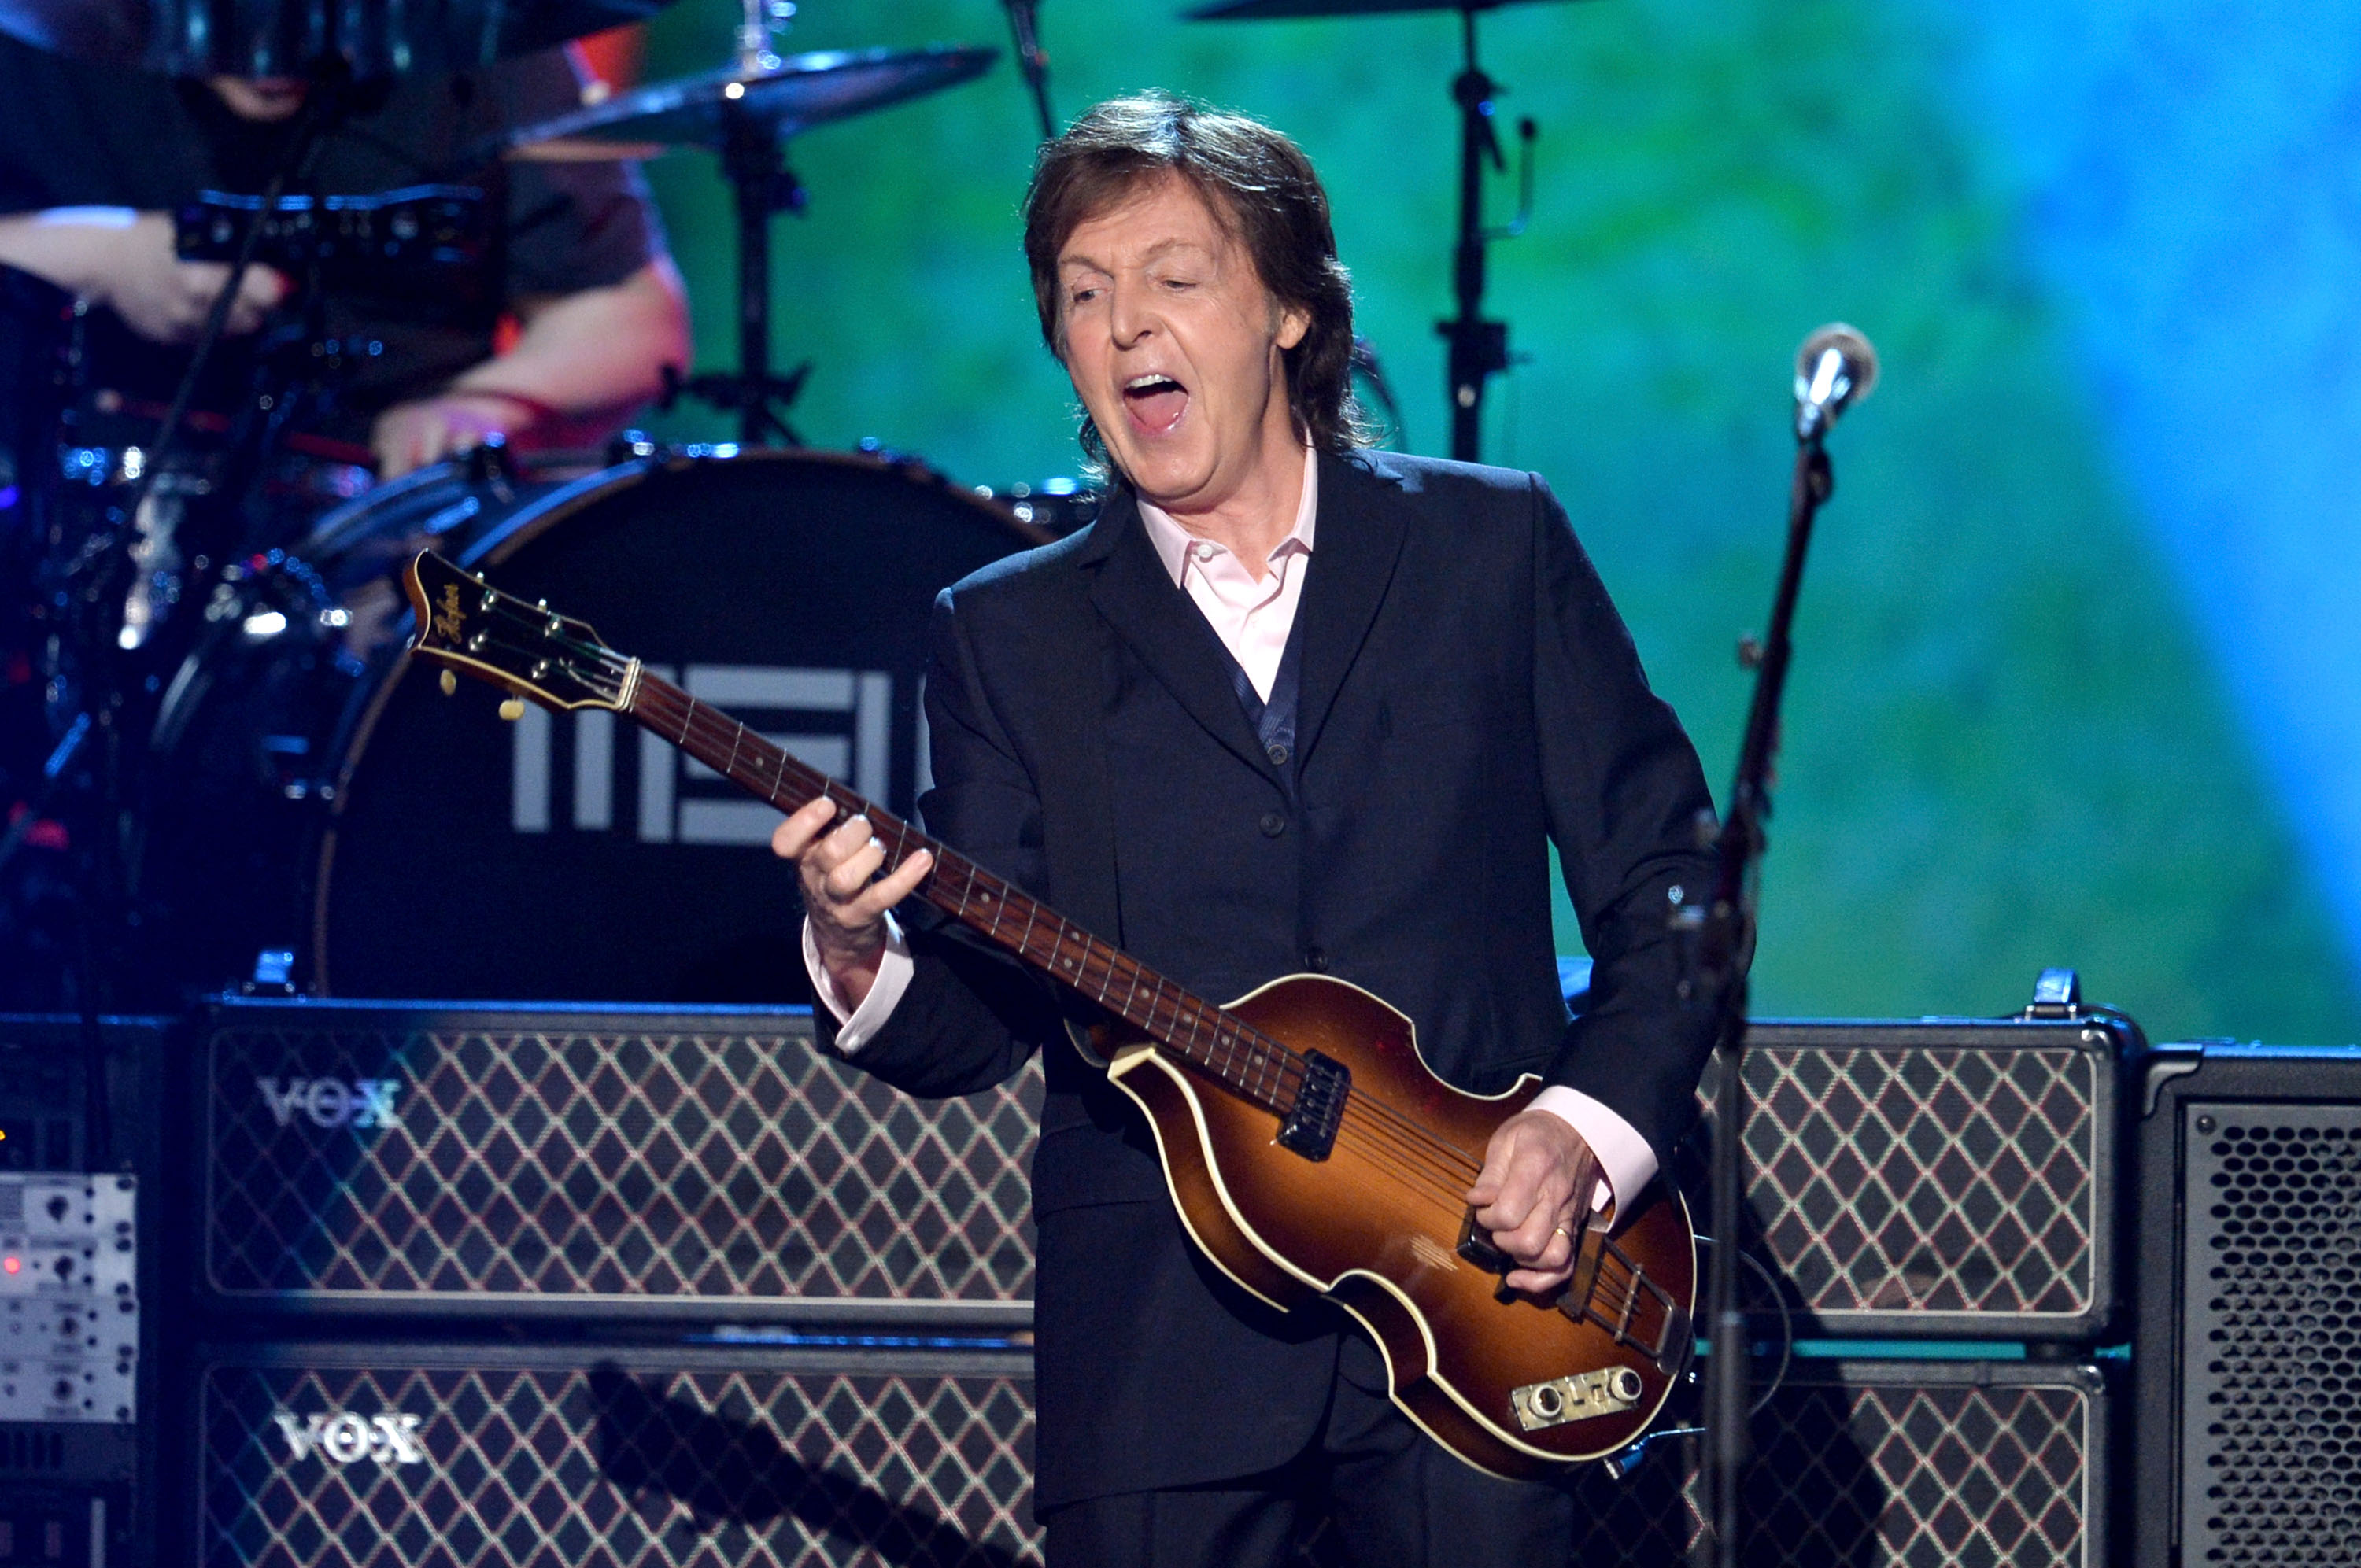 14 Reasons Every Teenager Should Know Who Paul McCartney Is